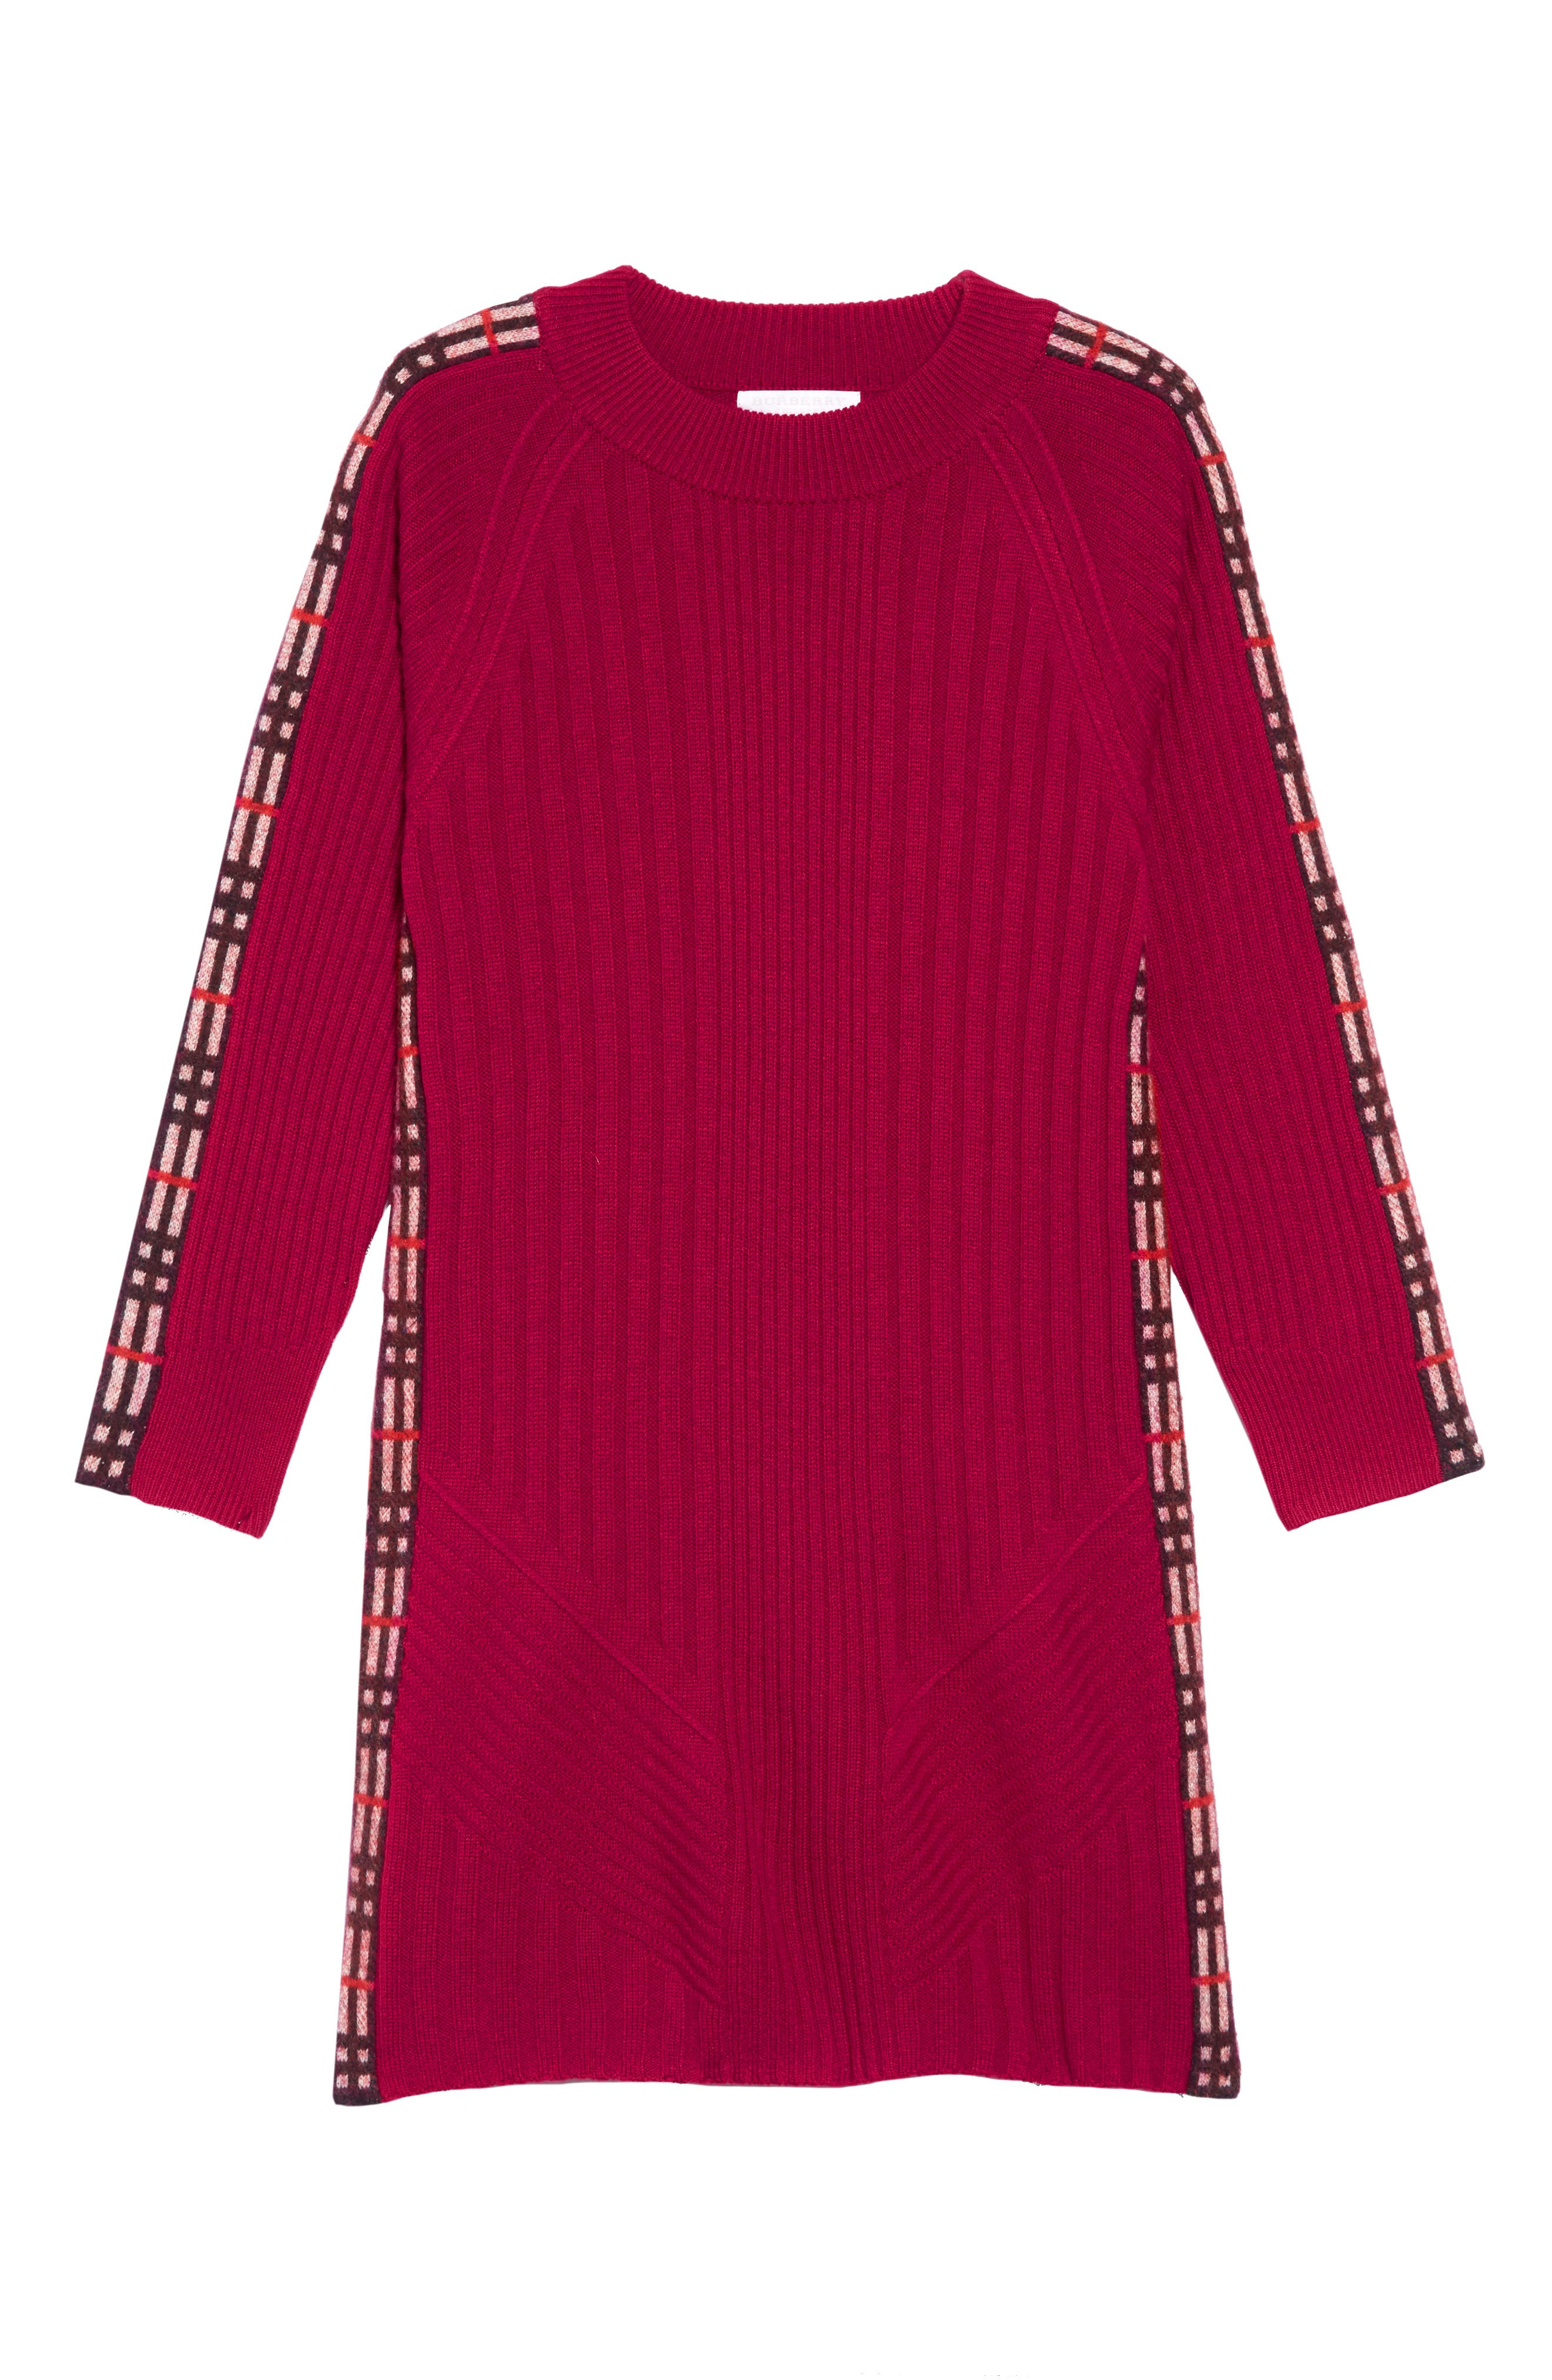 Kids Cathina Check Detail Wool & Cashmere Sweater Dress,                             Main thumbnail 1, color,                             BURGUNDY RED